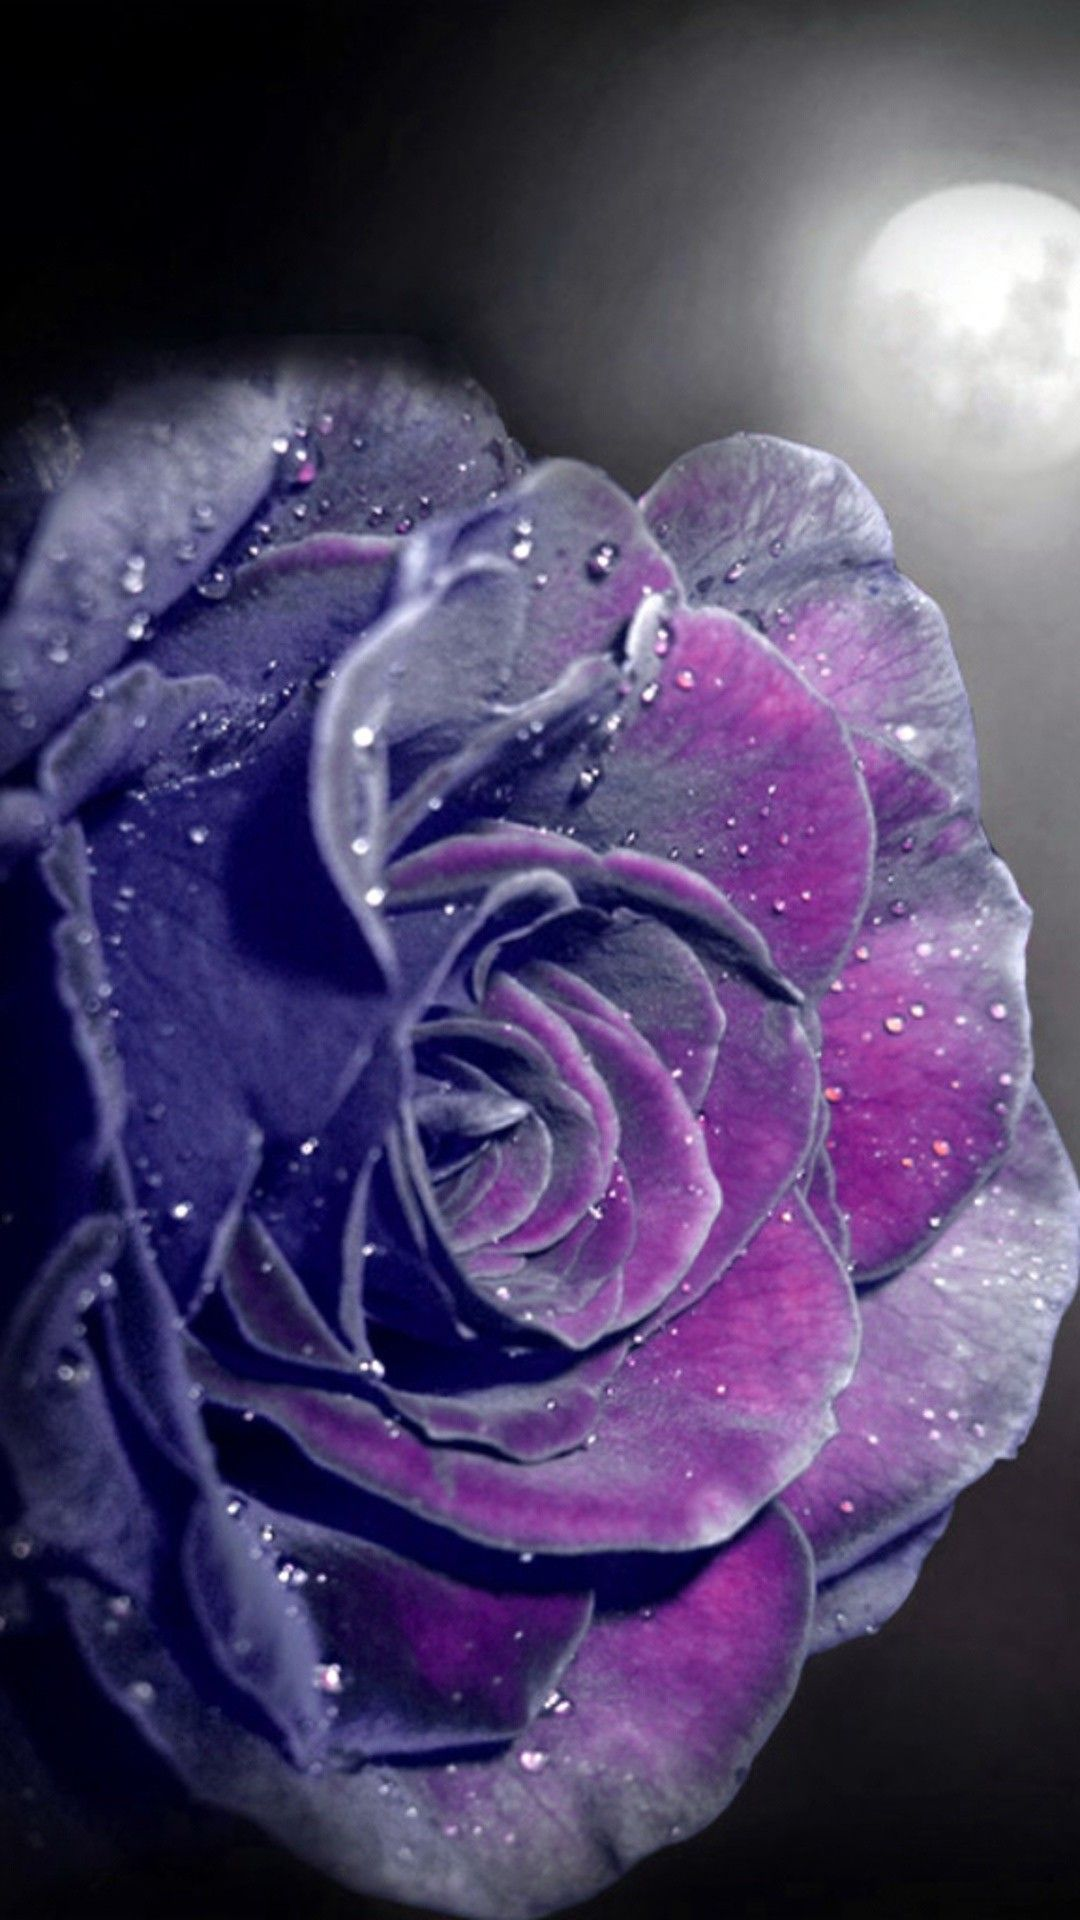 Purple Rose Wallpaper Iphone Best Hd Wallpapers Purple Roses Wallpaper Purple Roses Rose Flower Wallpaper